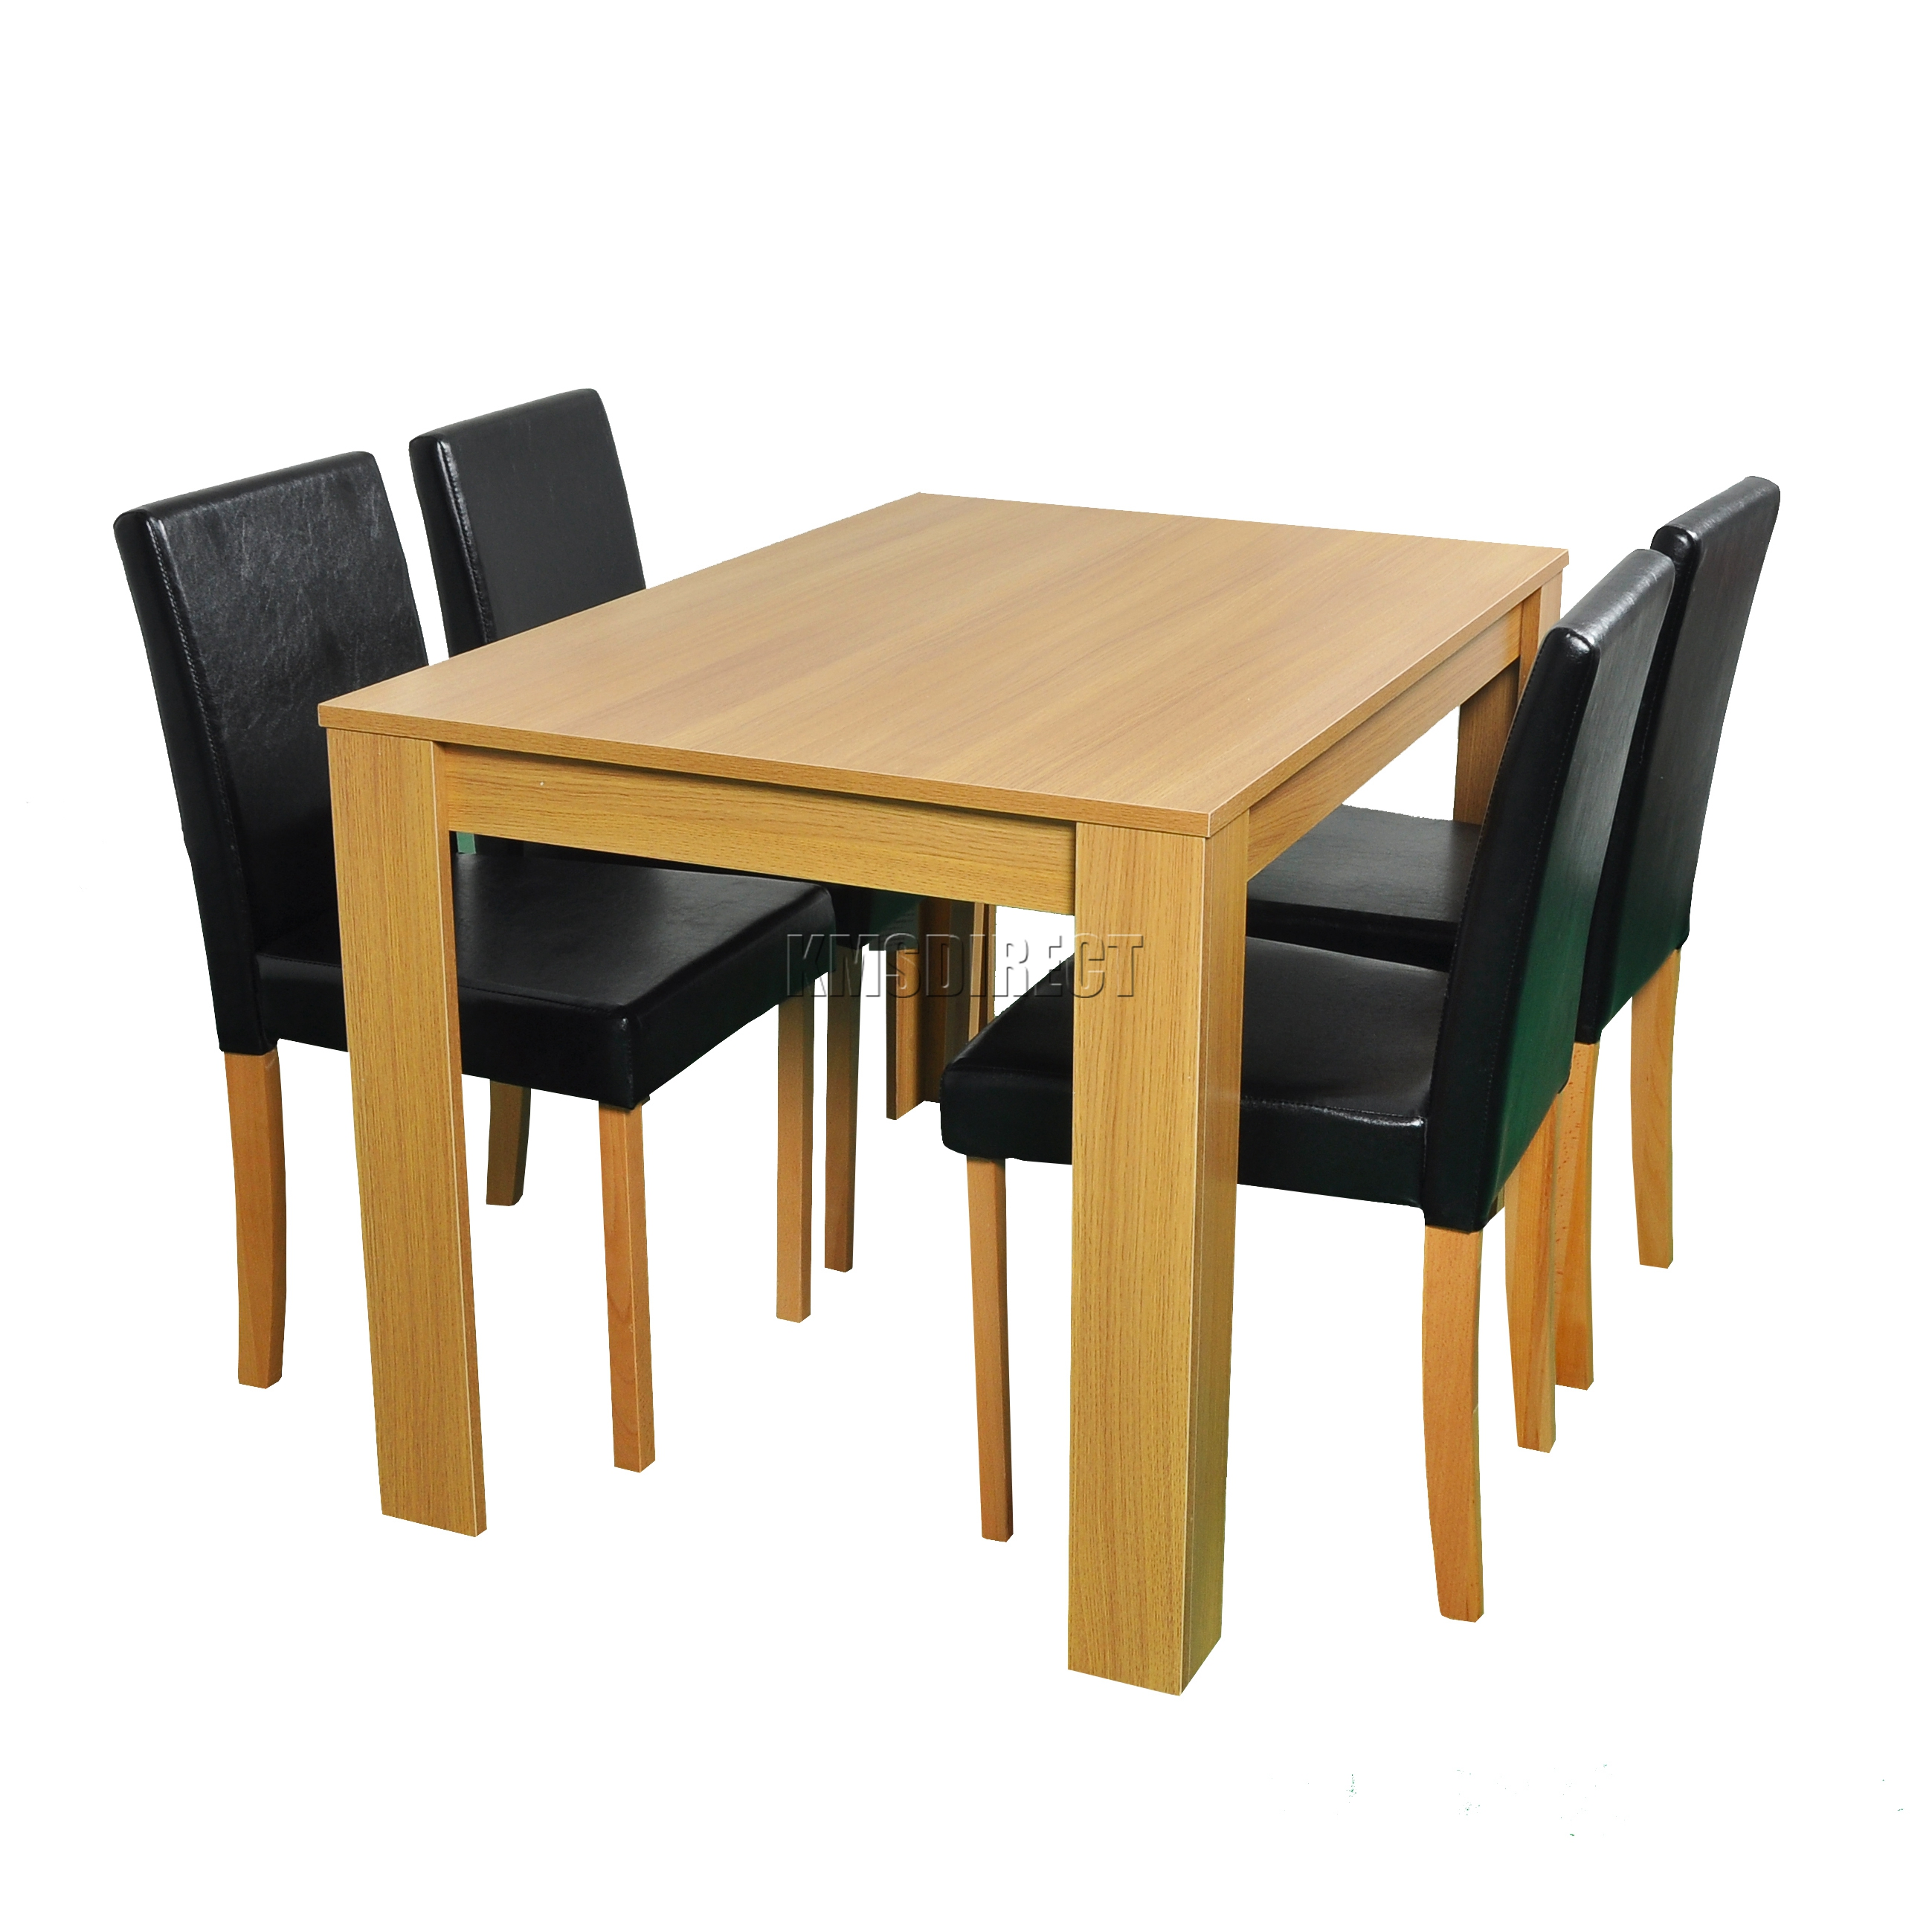 westwood wooden dining table and 4 or 6 pu faux leather chairs set furniture ebay. Black Bedroom Furniture Sets. Home Design Ideas